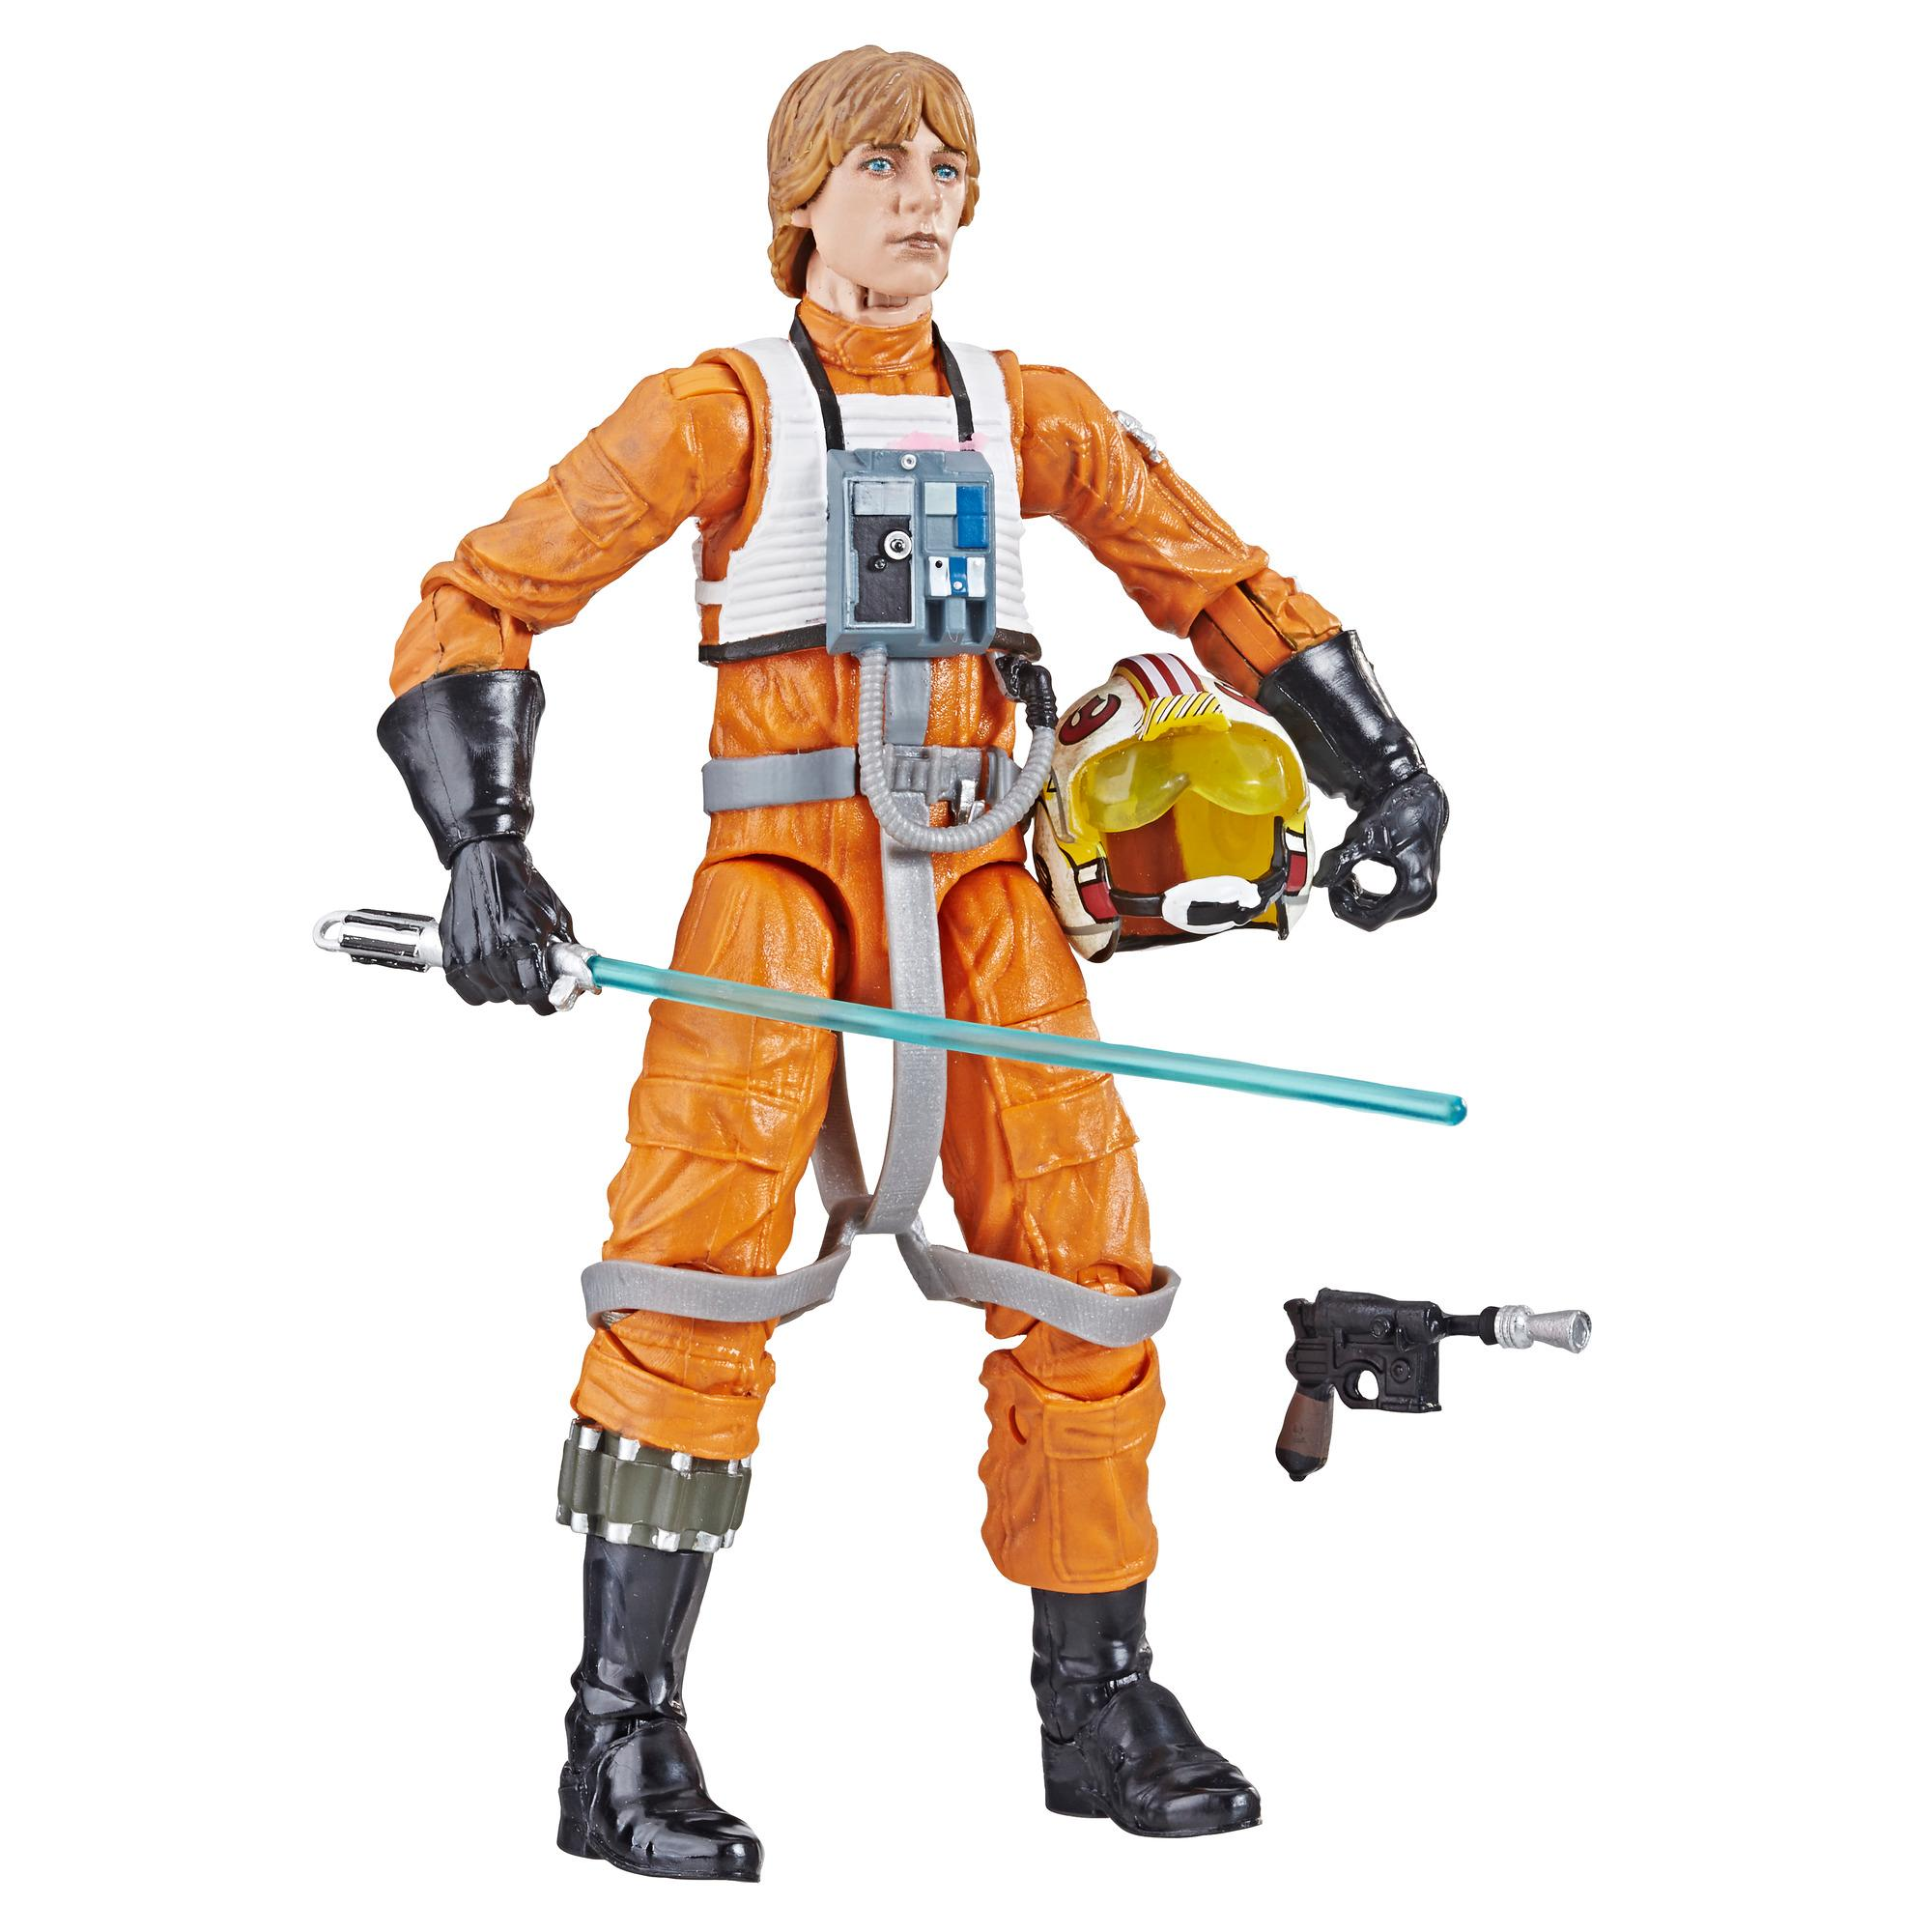 Star Wars The Black Series Archive - Figura de Luke Skywalker